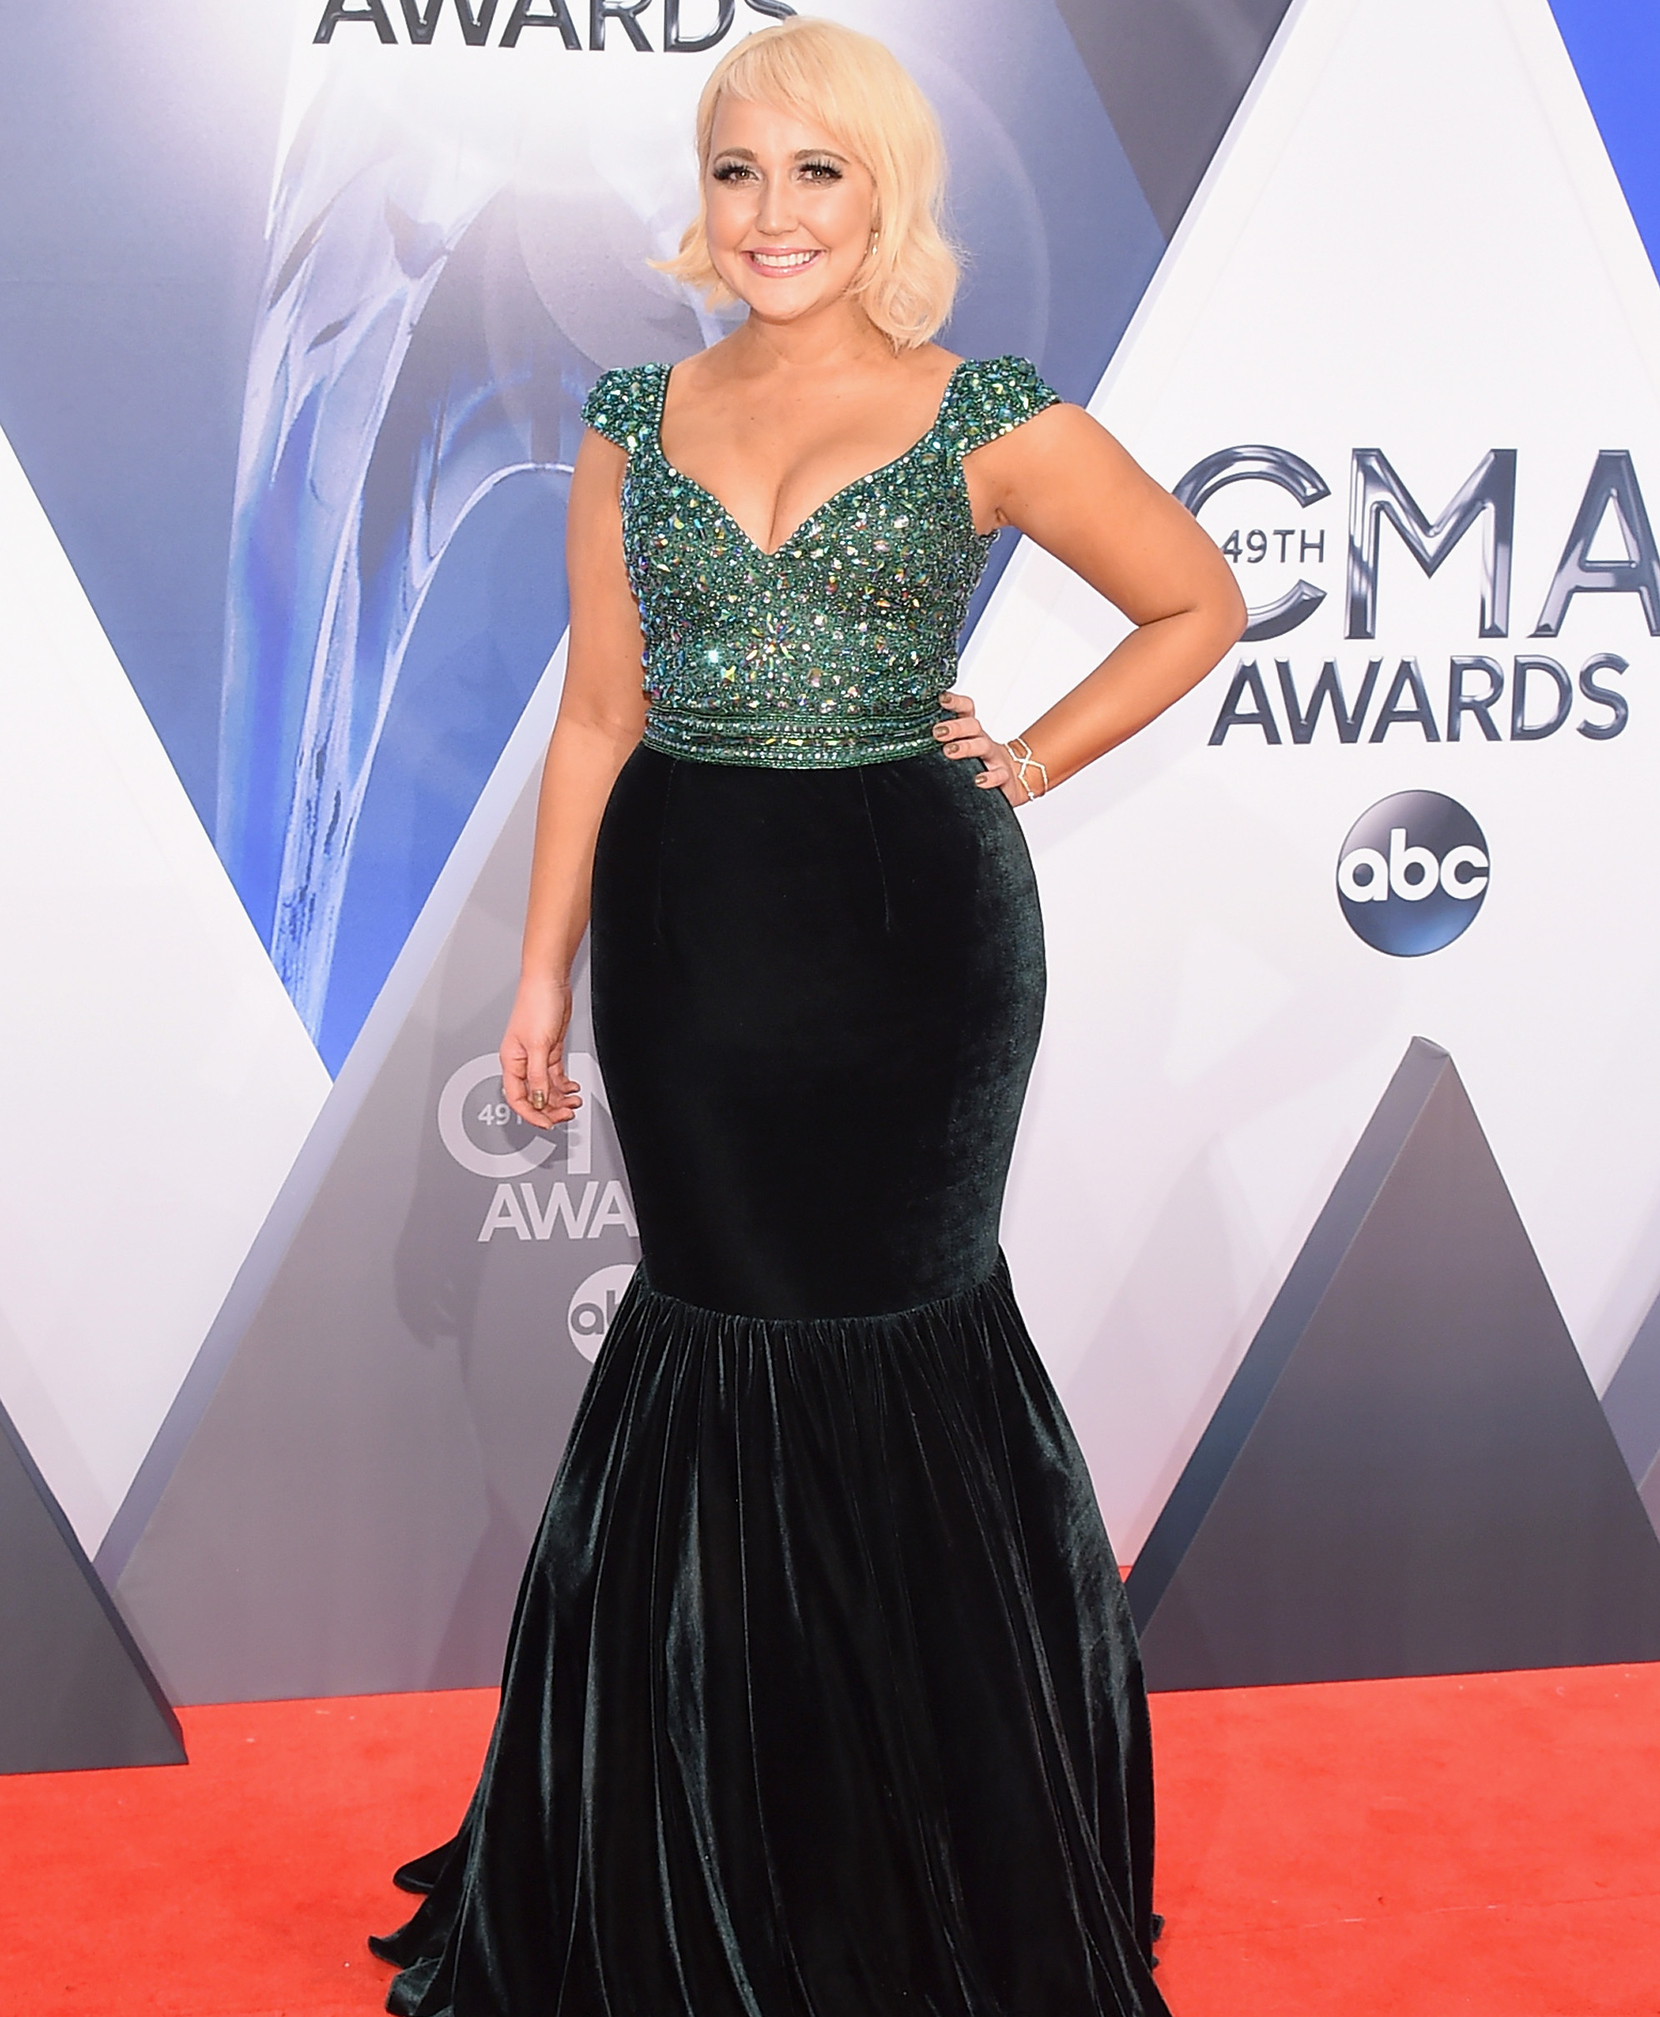 CMA Awards 2017: The Best Dressed Stars of the Night